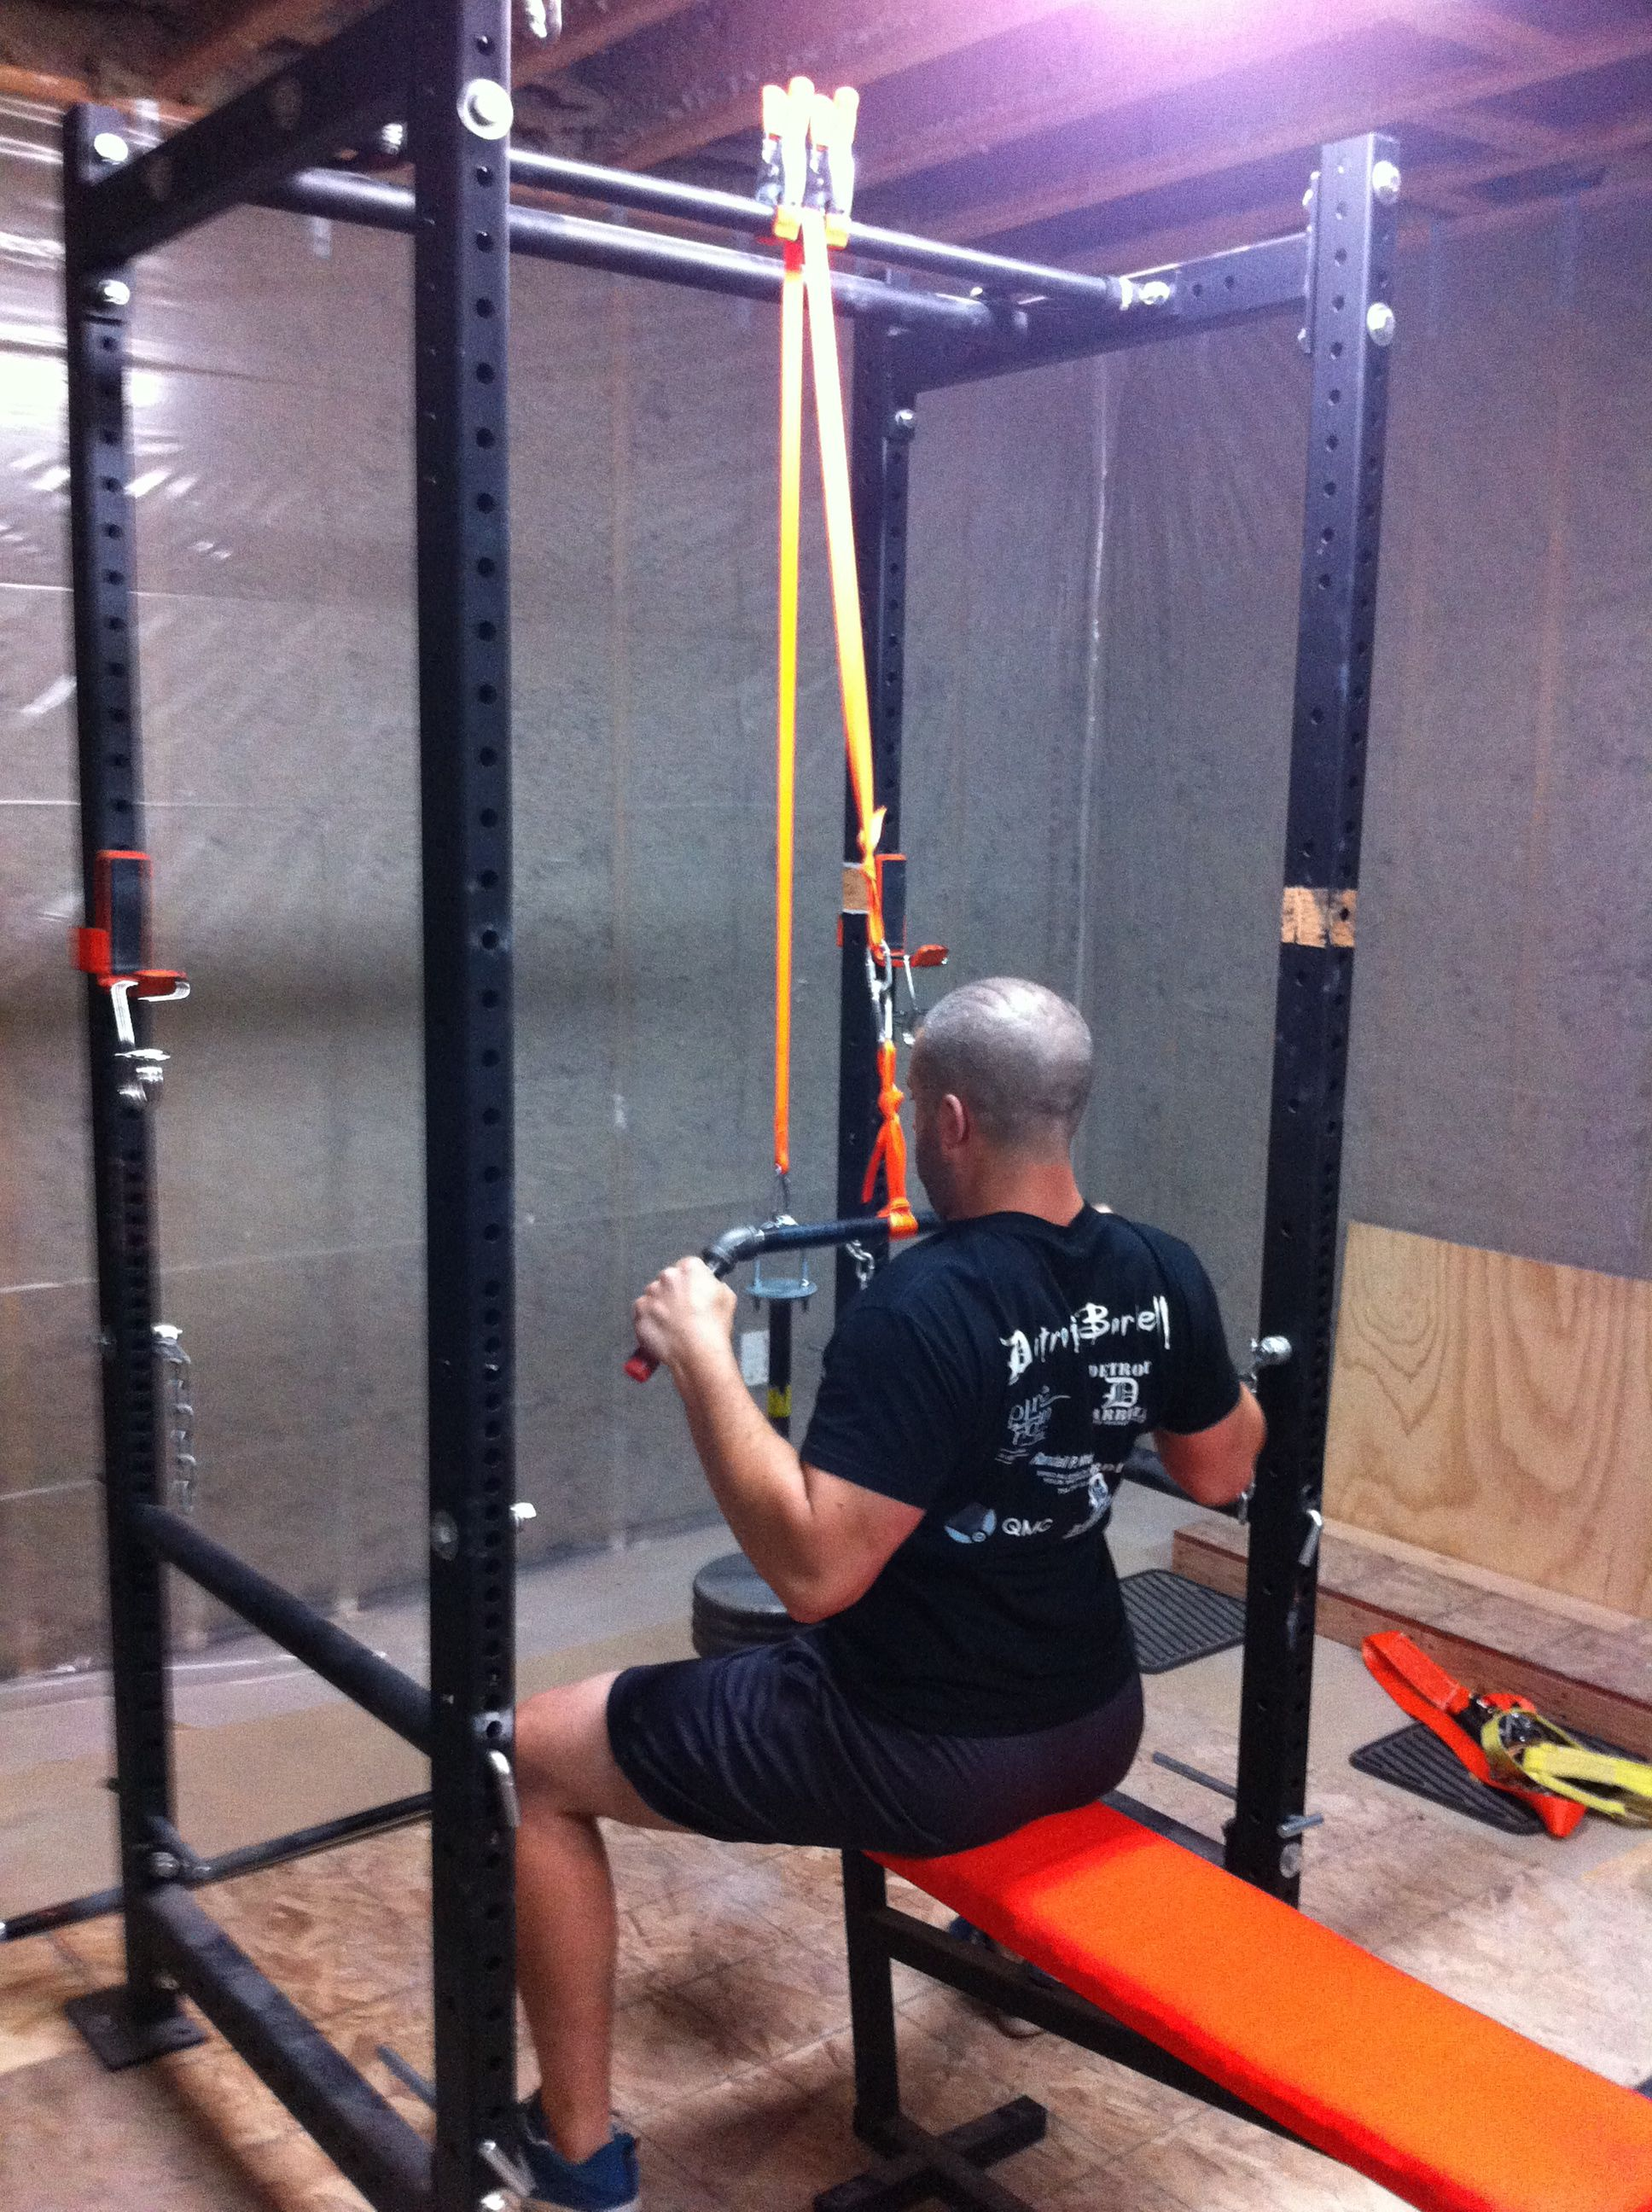 Diy Garage Gym Equipment Homemade Power Rack With Lat Pulldown Homemade Ftempo